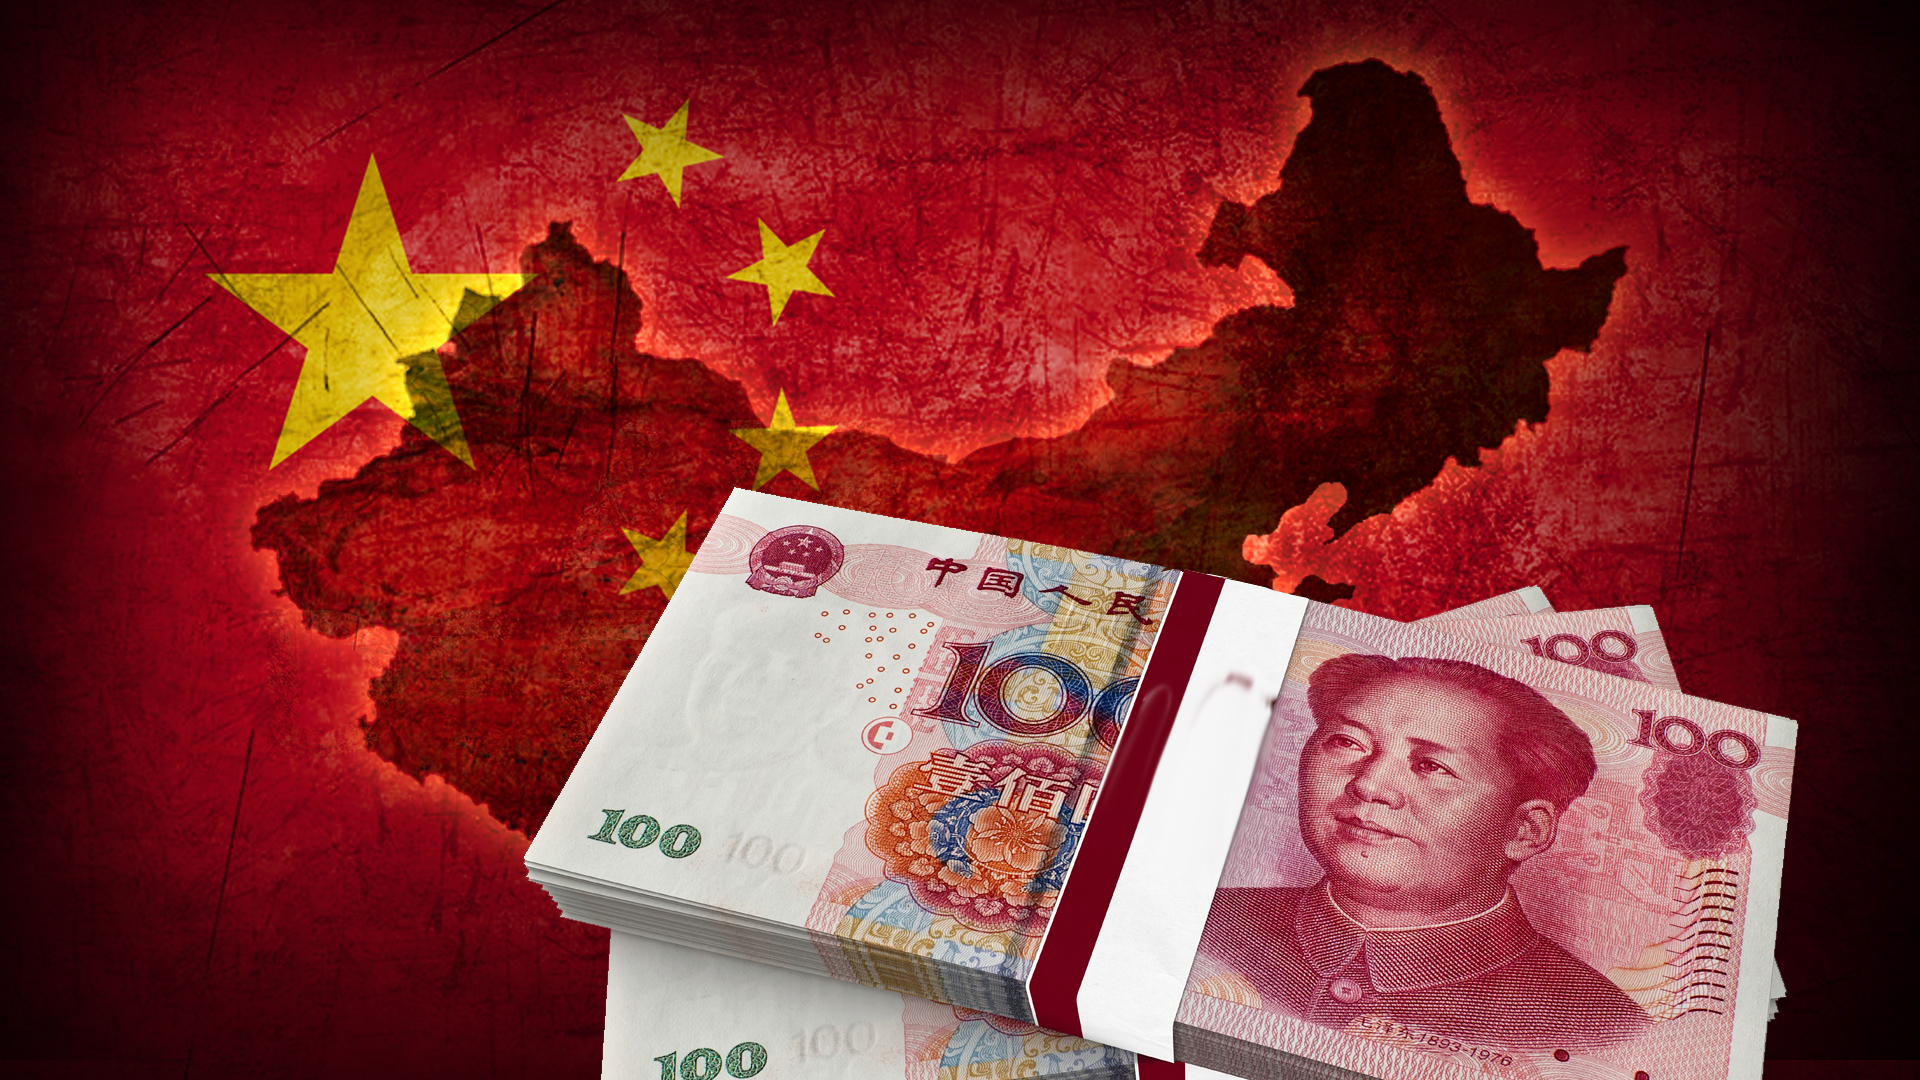 EU Should Not Recognize China as a Market Economy in a Hurry